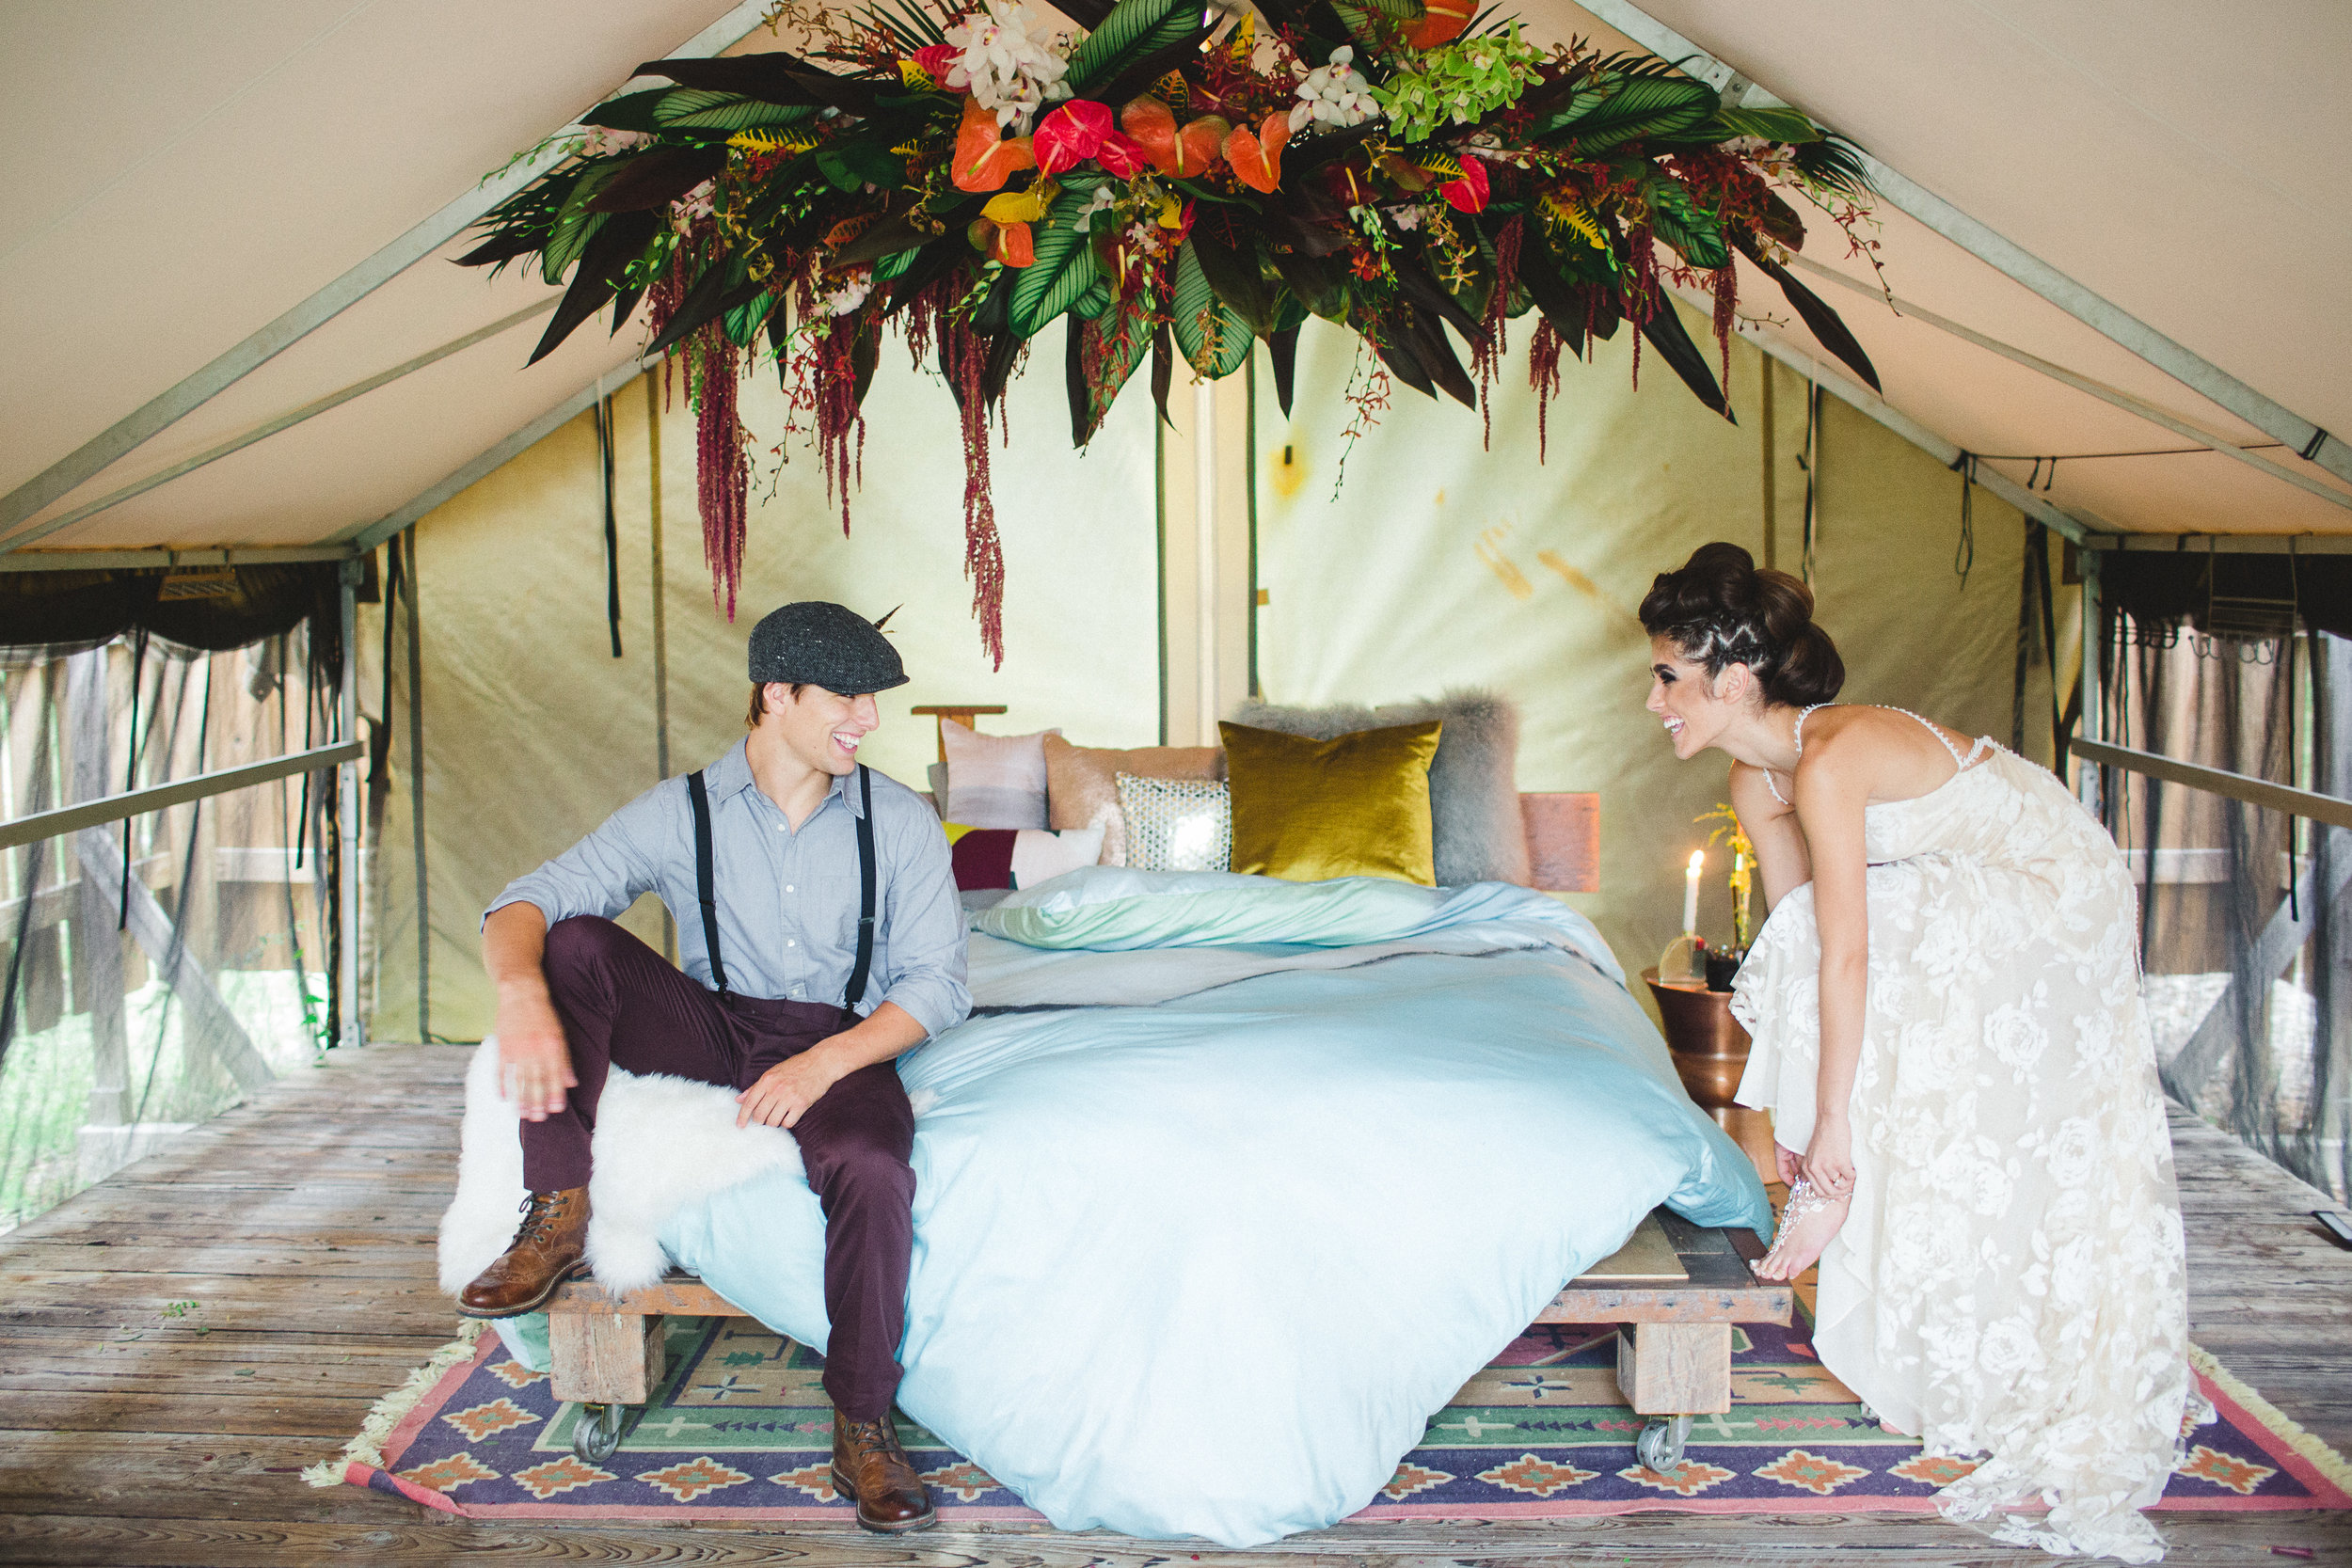 izzy-hudgins-photography-emily-burton-designs-ivory-and-beau-bridal-boutique-daughters-of-simone-sonje-jenny-yoo-bridesmaids-glamping-wedding-boho-wedding-outdoor-wedding-coldwater-gardens-wedding-savannah-bridal-boutique-savannah-wedding-planner-29.jpg